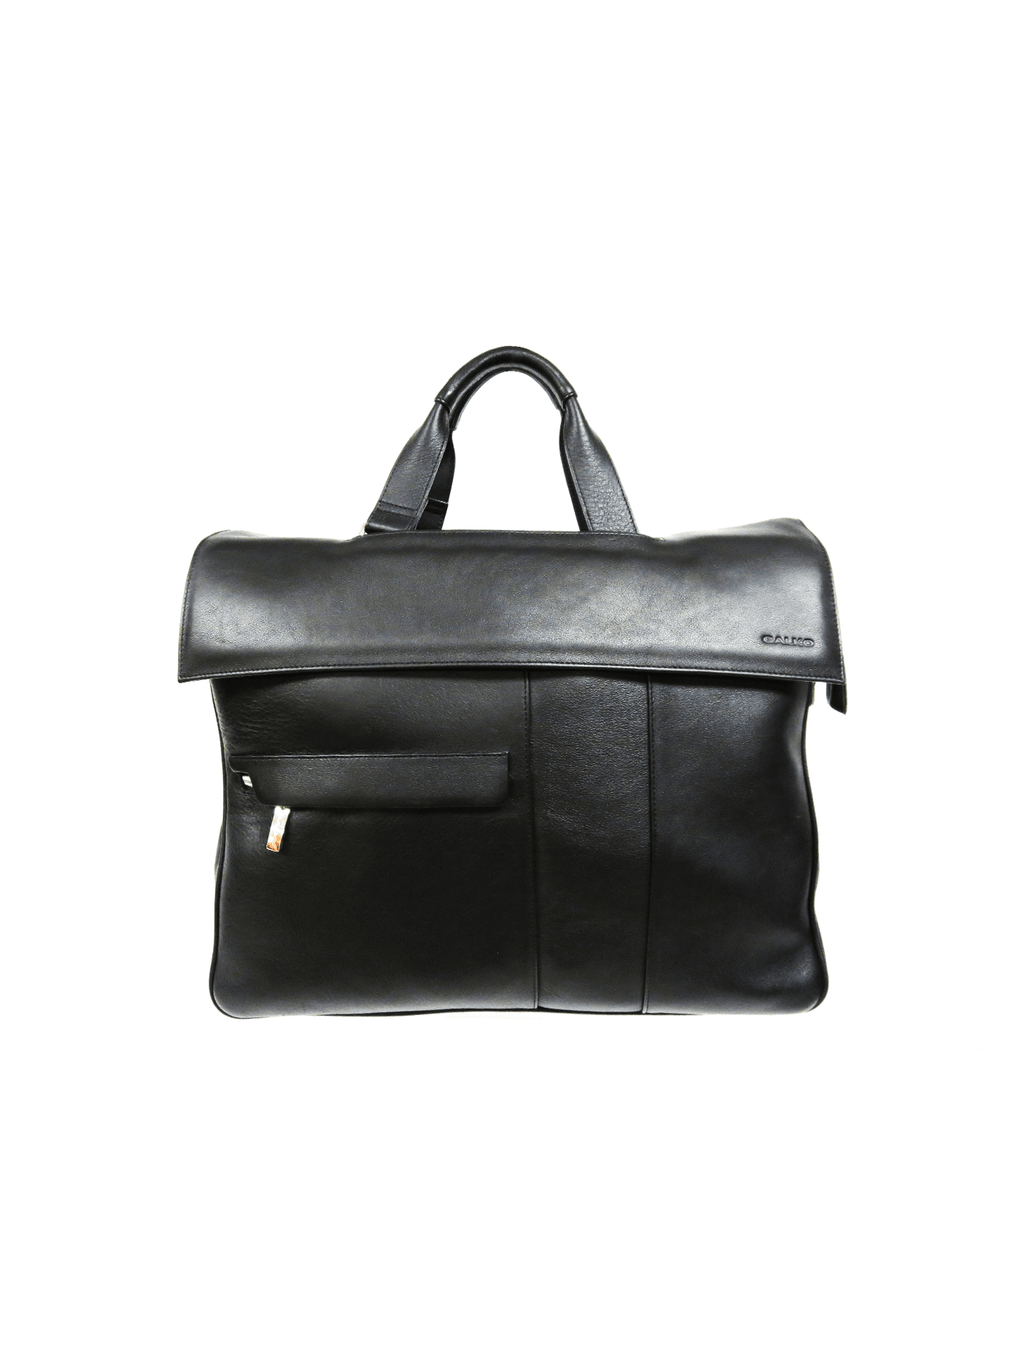 Classic Black Briefcase-Leather-Spacious Interior-Multiple Pockets.